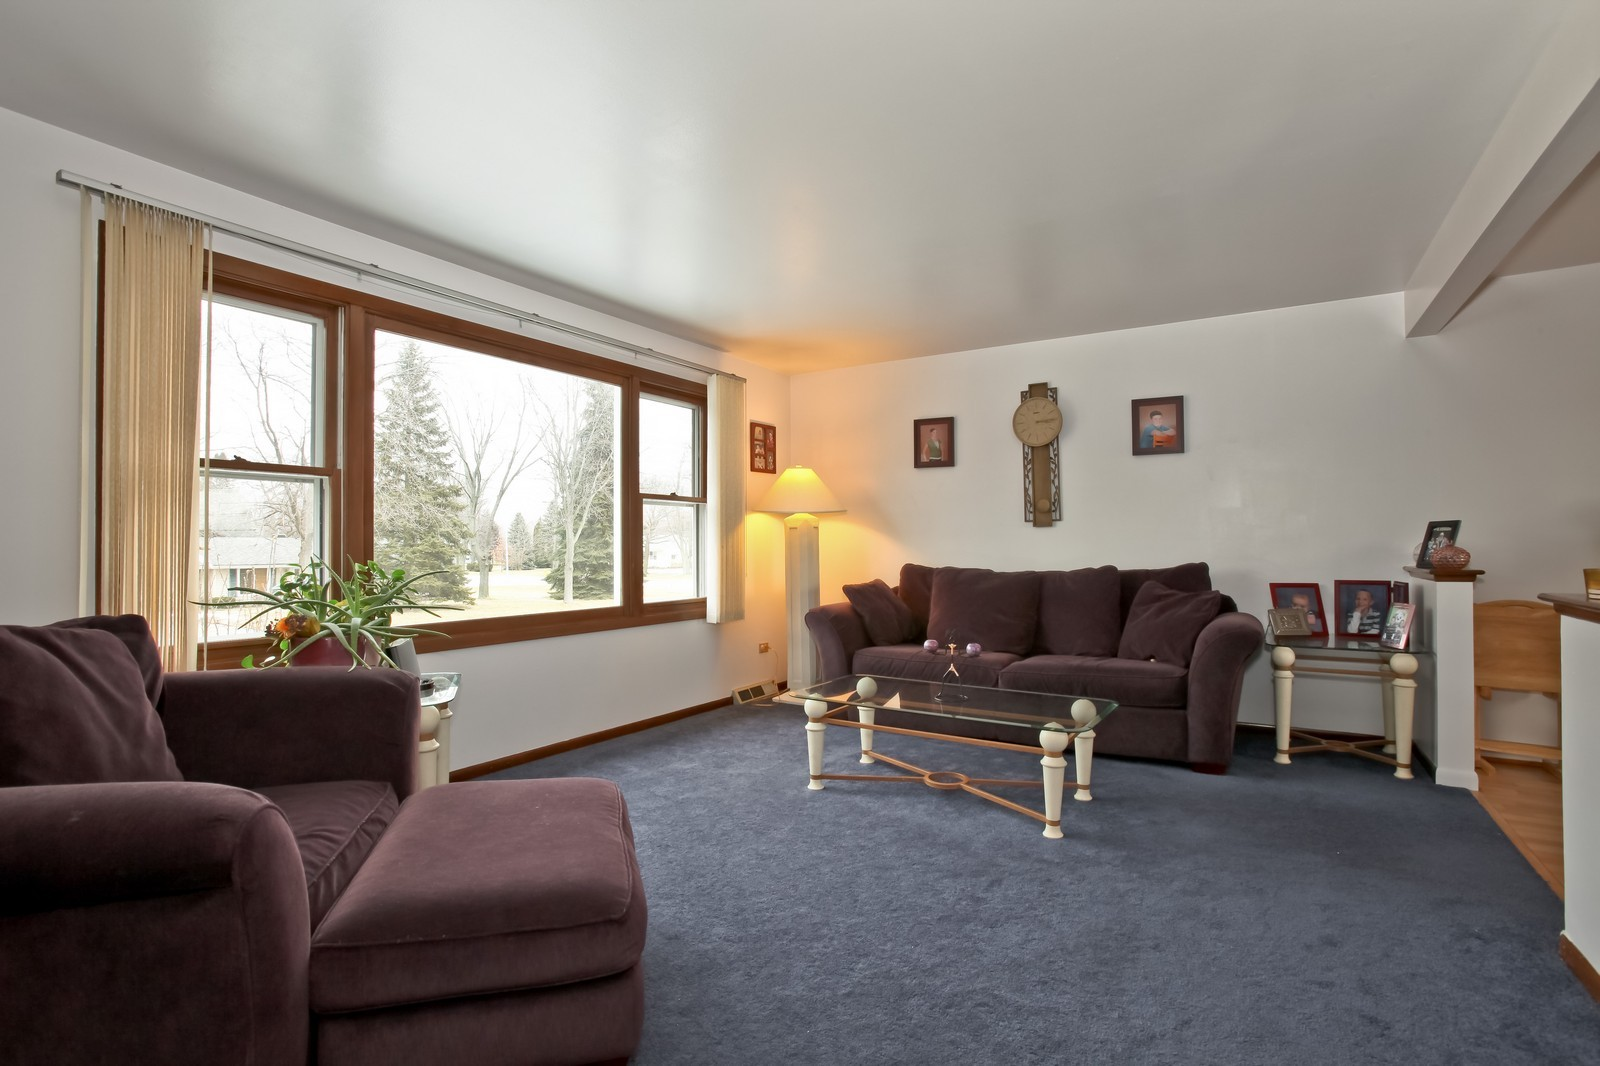 Real Estate Photography - 7609 W 173rd St, Tinley Park, IL, 60477 - Living Room